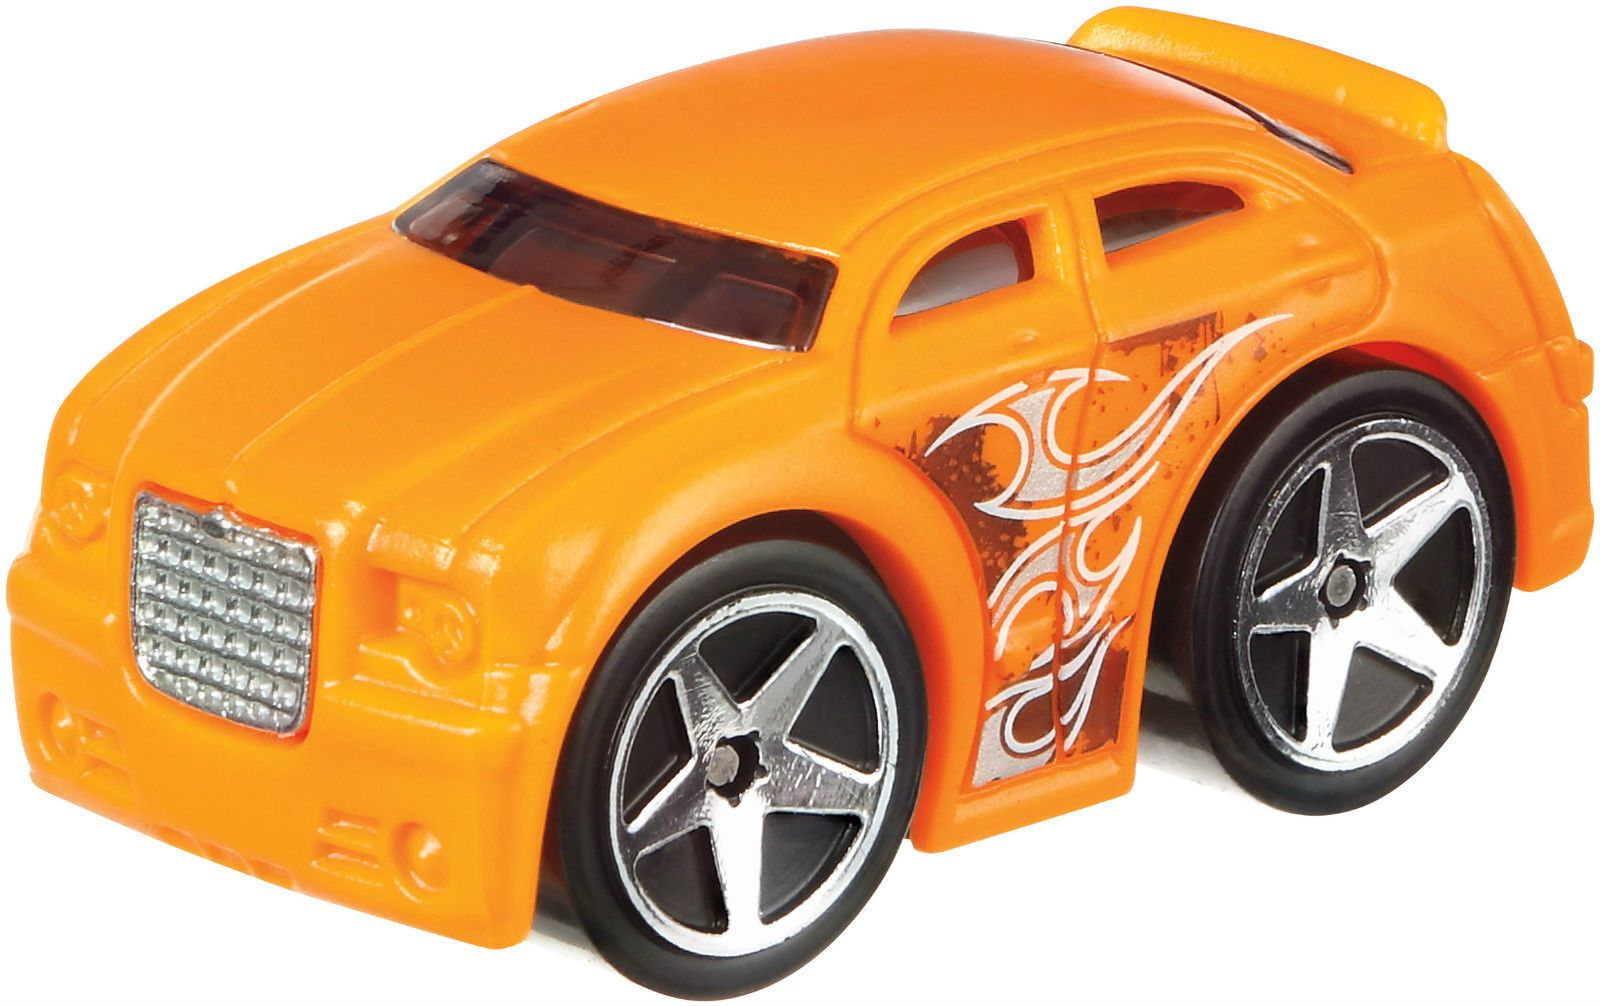 Free hot wheels colour shifter games for girls